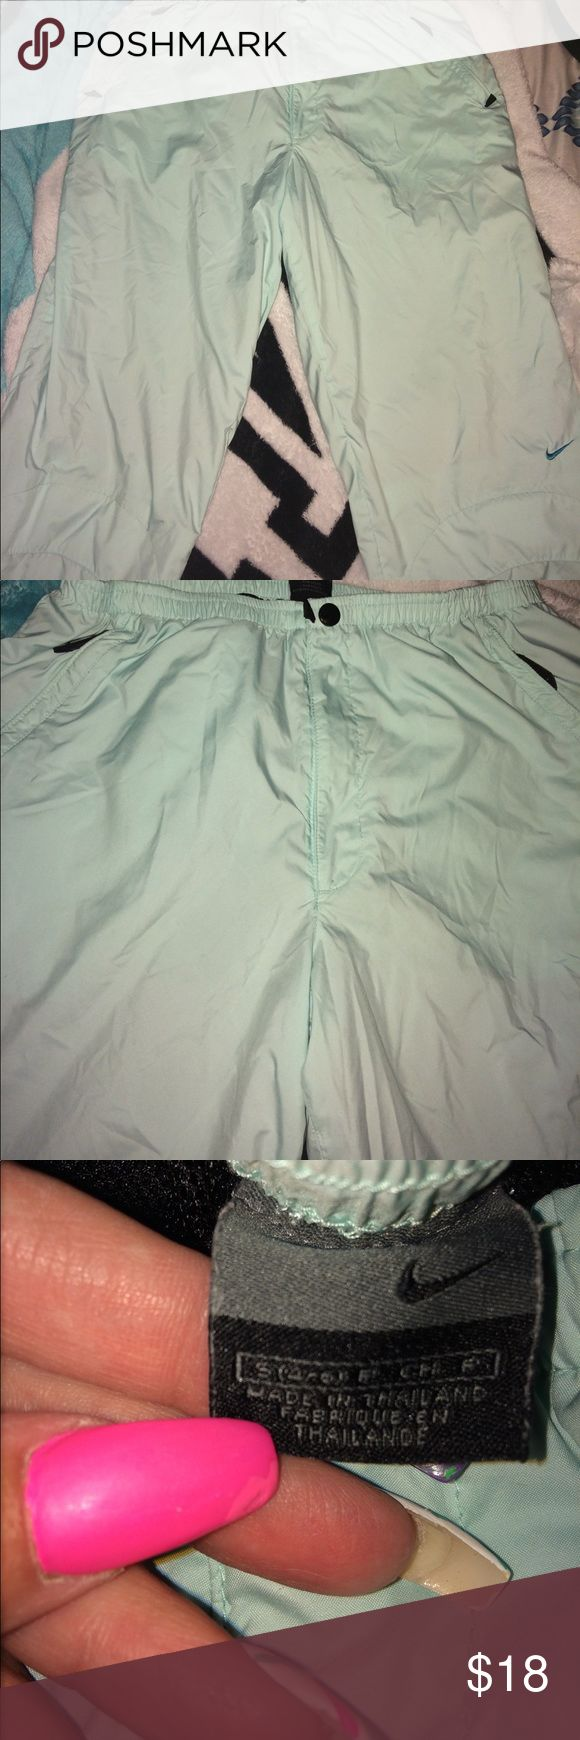 Women's Nike Capris Women's Nike Capri pants they are in great condition size small should fit between a four and six. They are 30 inches in length. Inseam is 21 inches. Waist will stretch to 31 inches. Mid rise 10 inches. They come from a smoke free home. Nike Pants Track Pants & Joggers